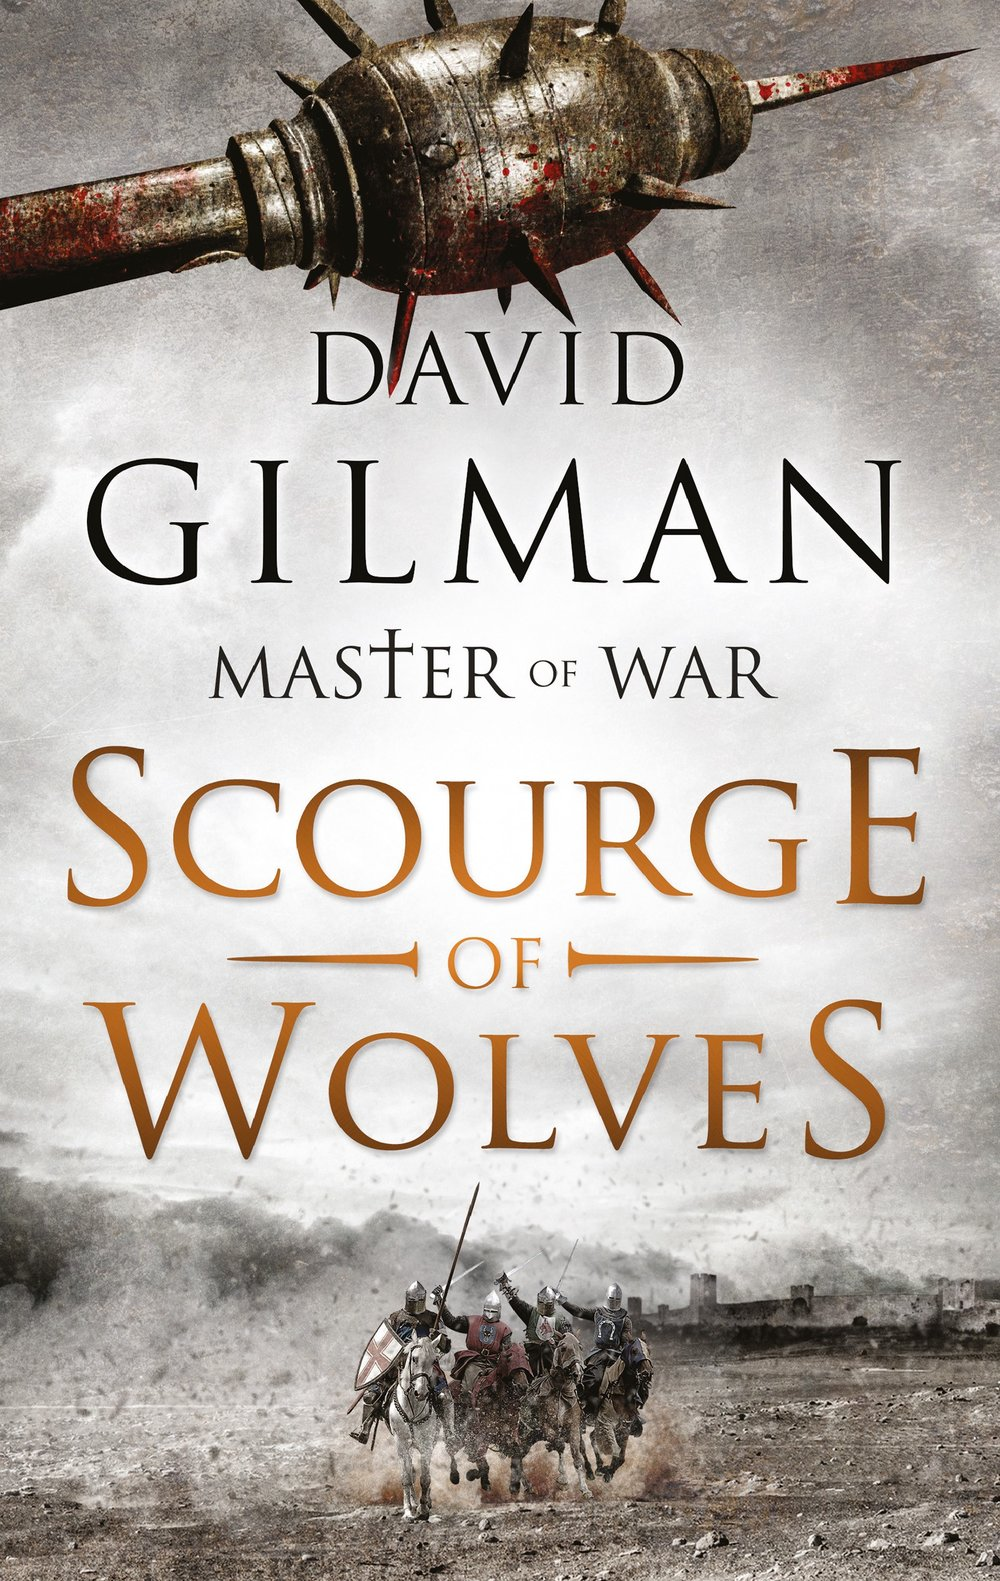 005 SCOURGE OF WOLVES (MASTER OF WAR series) - UK HoZ reissue (new).jpg